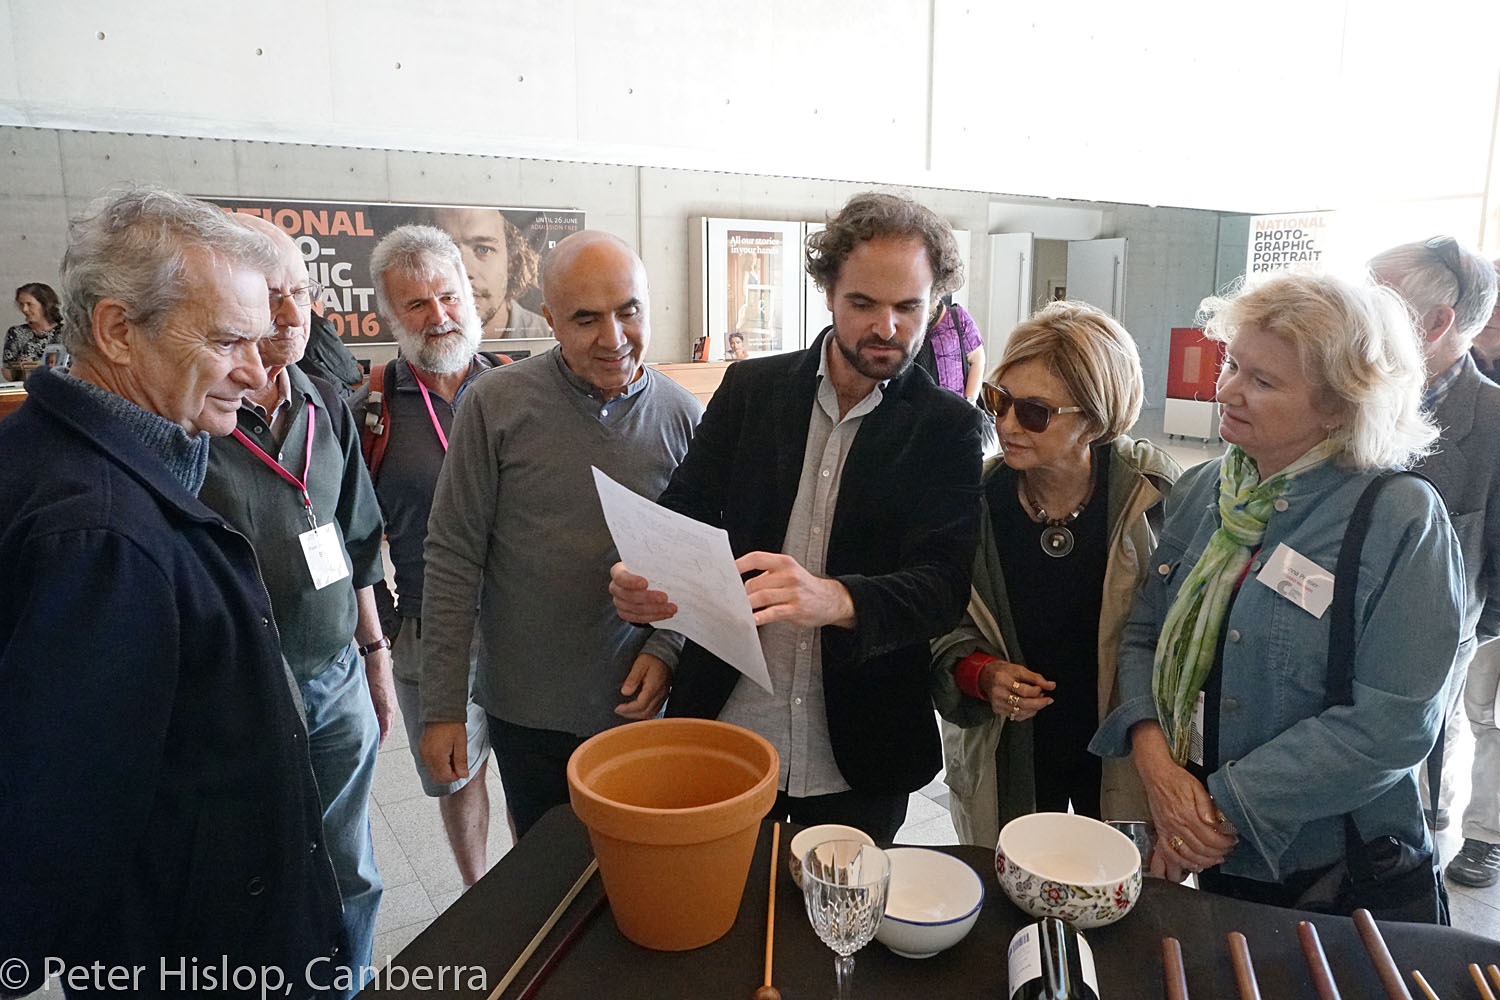 CIMF 2016 - Concert 08 - Bells and Smells. Composer Tristan Coelho discusses his piece with members of the audience